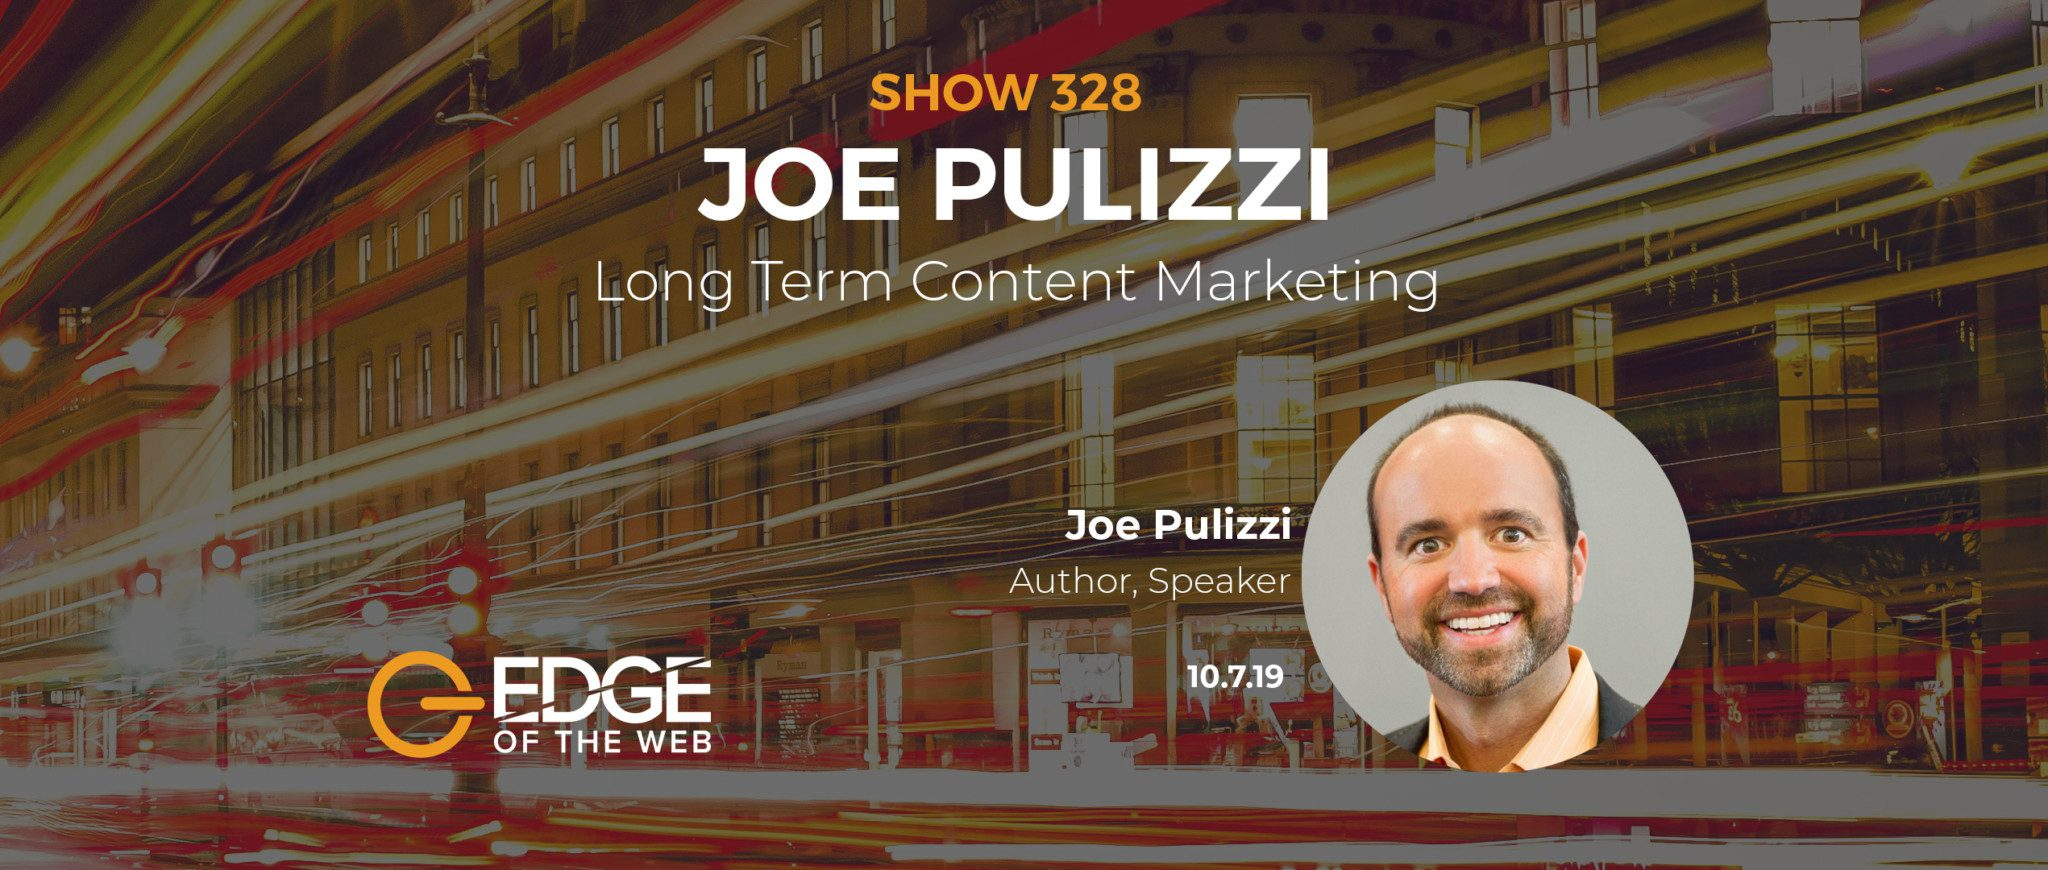 Show 328: Long term content marketing, featuring Joe Pulizzi